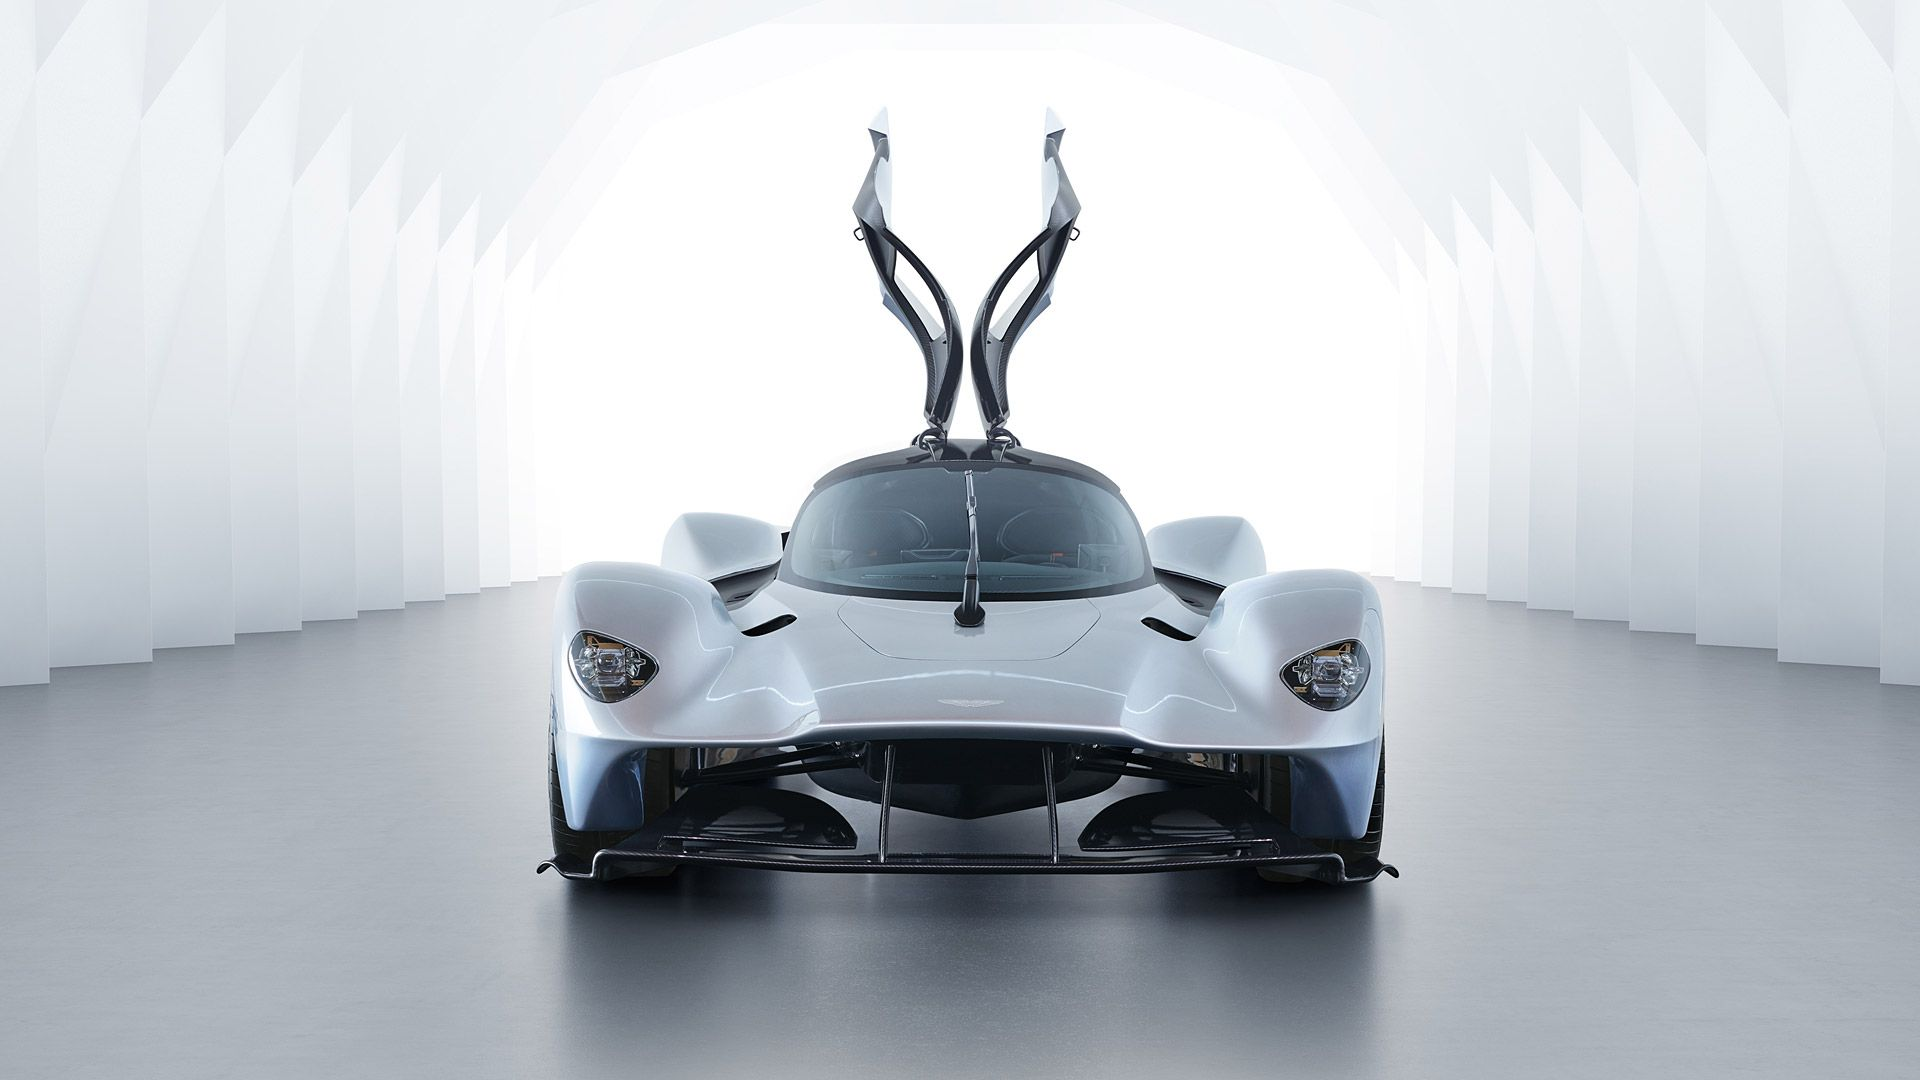 2018 Aston Martin Valkyrie Wallpapers & HD Image